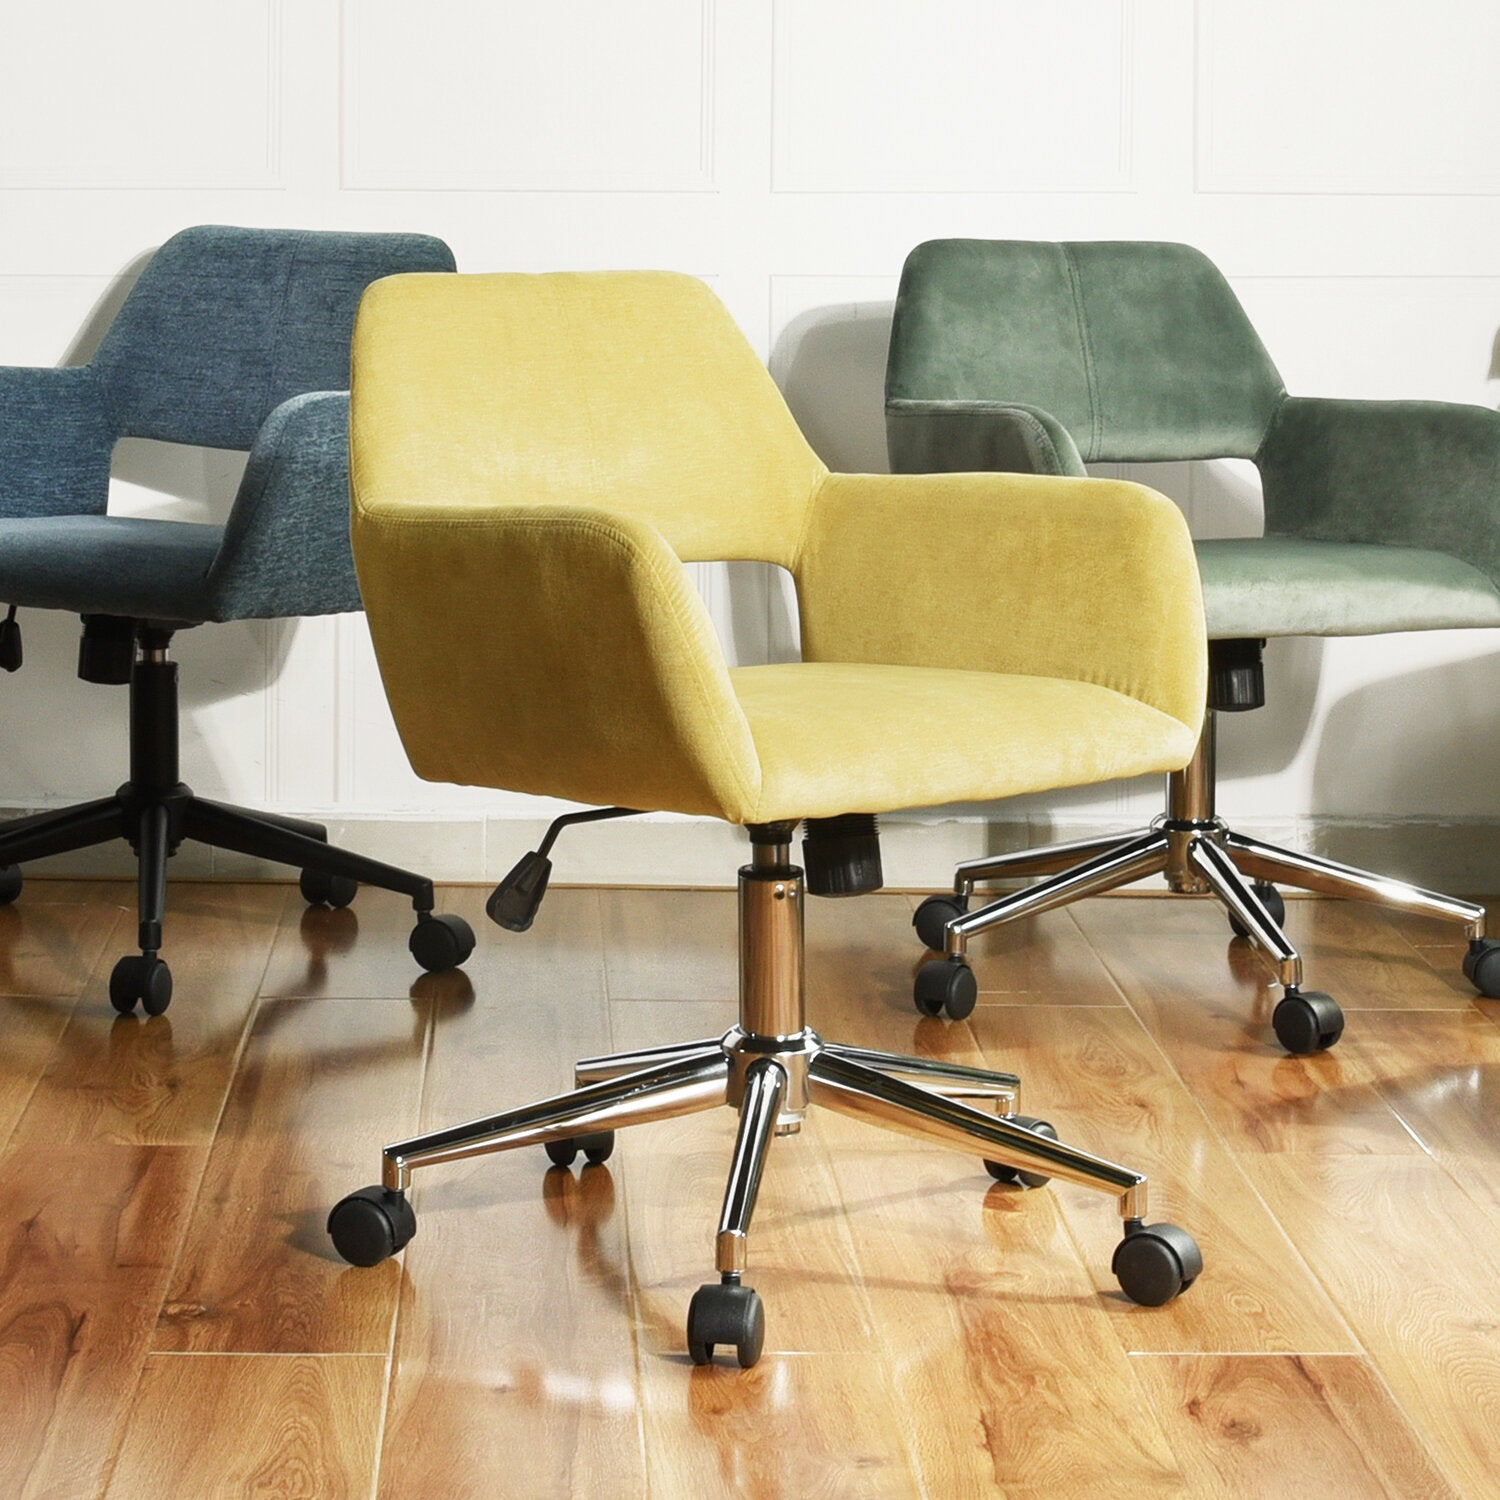 Sabrina Velvet Home Office Swivel Chair Pertaining To Brister Swivel Side Chairs (View 13 of 15)